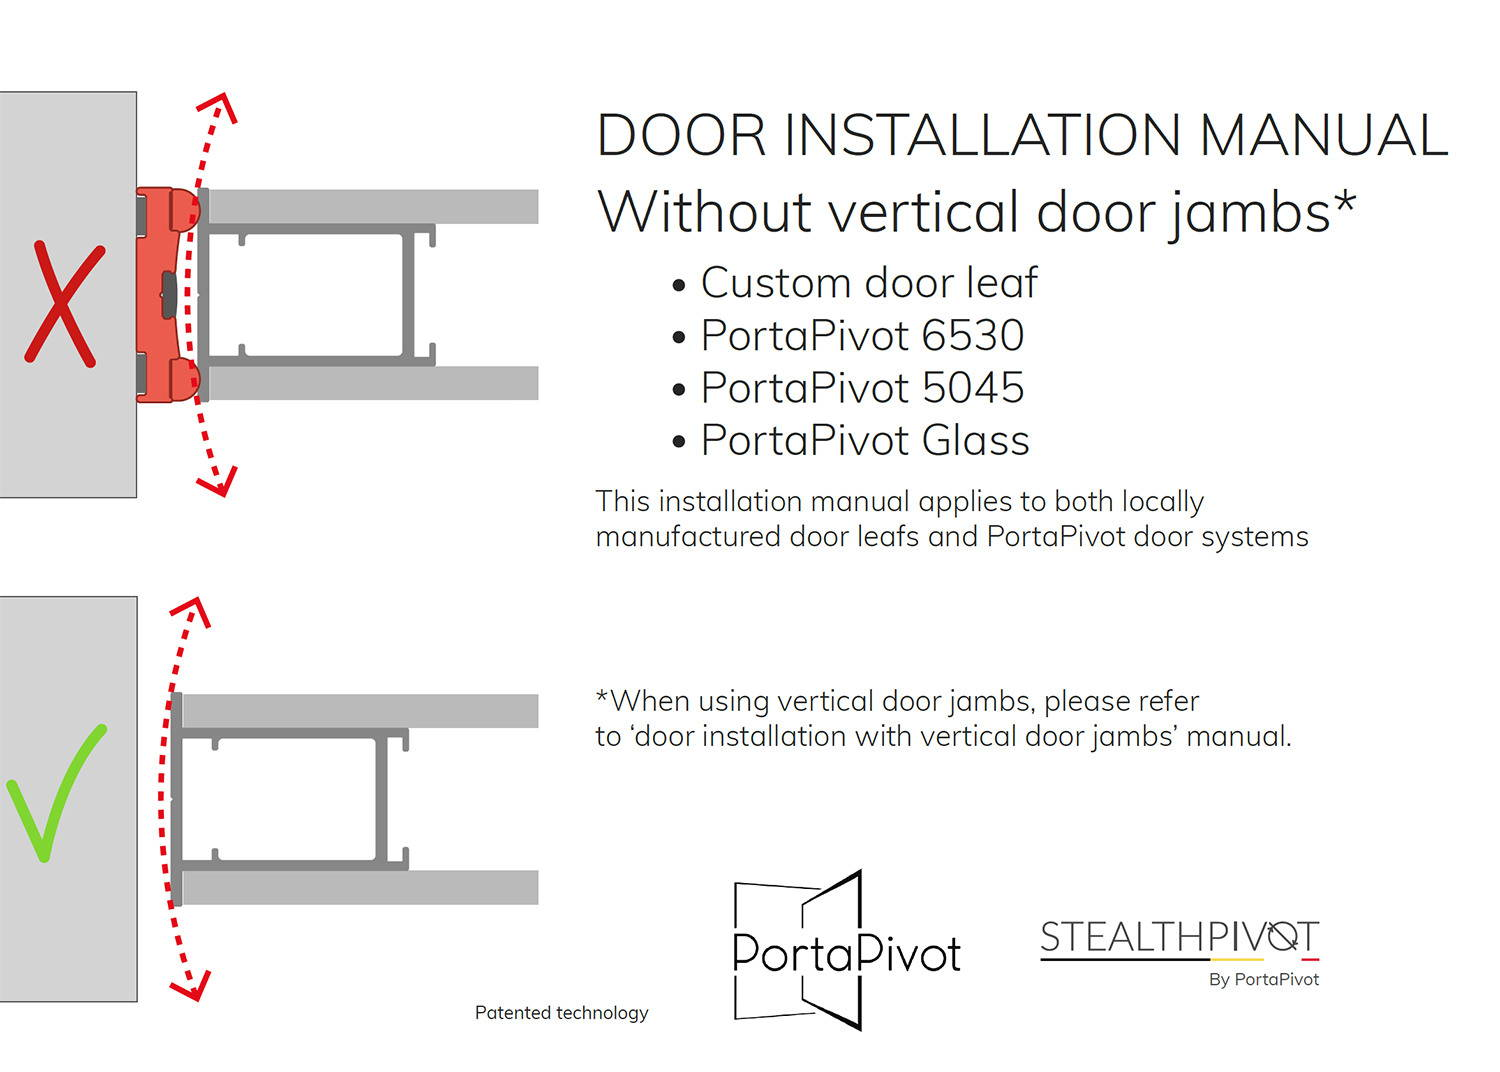 Portapivot 5045 installation manual without vertical door jambs